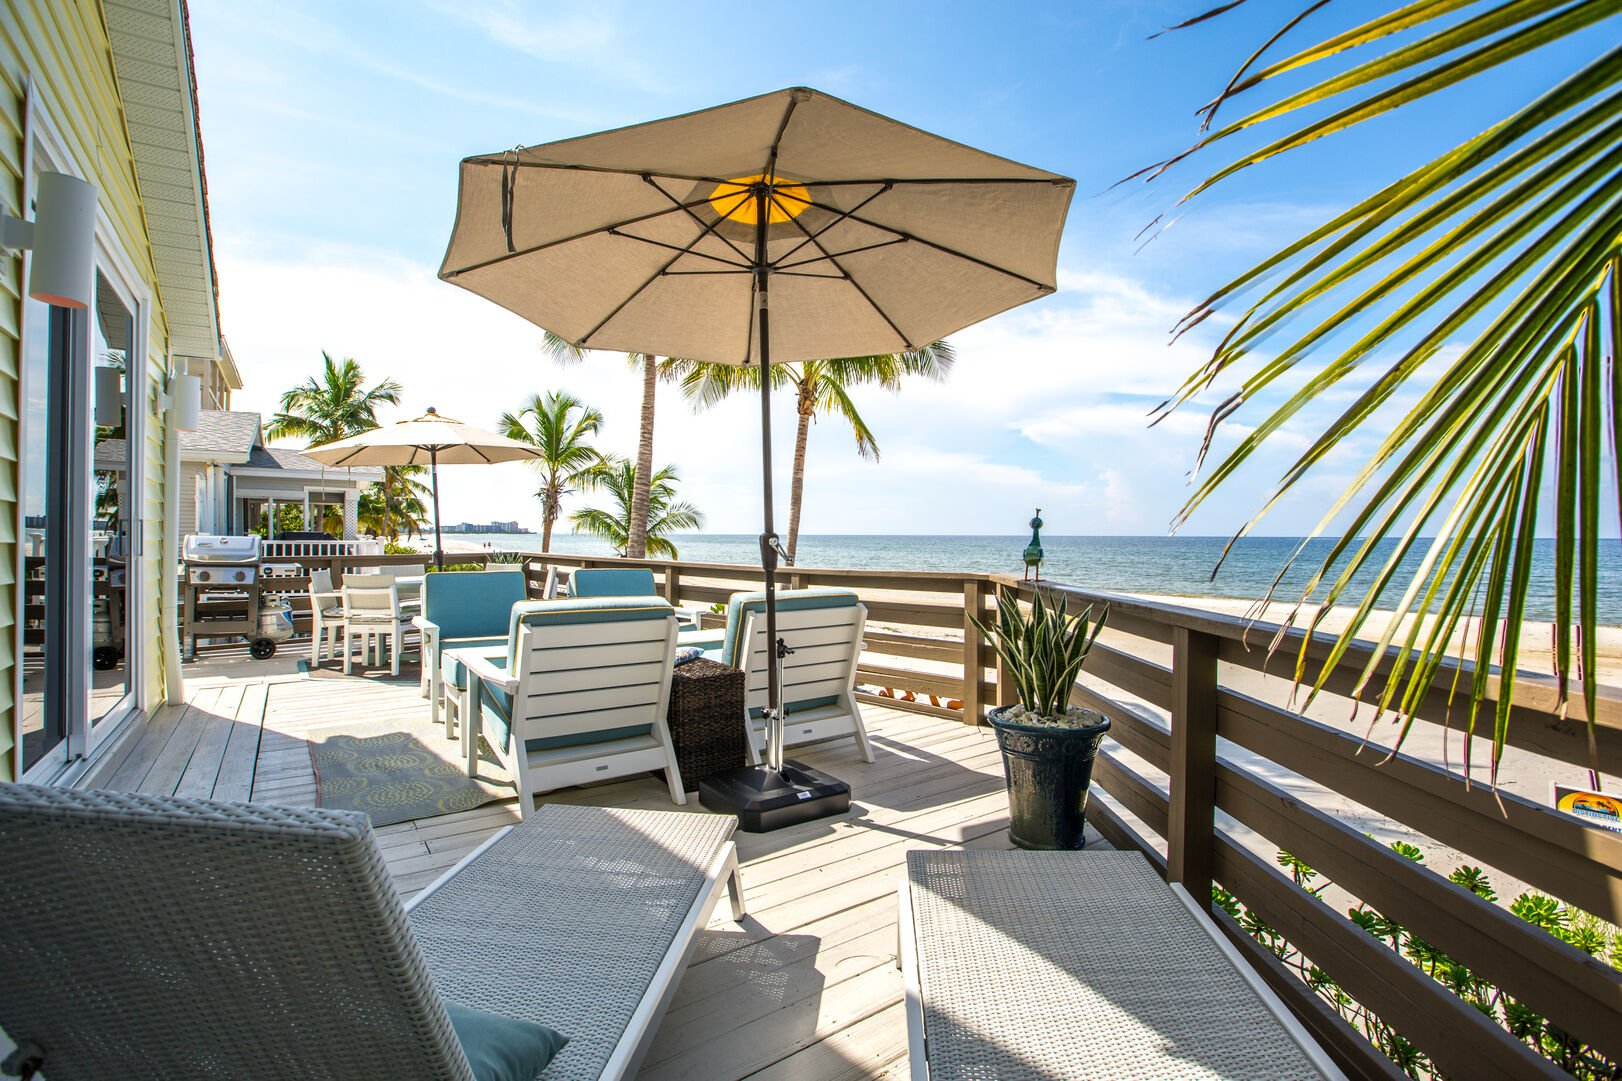 Patio overlooking the Beach at Beach Rental Fort Myers Beach